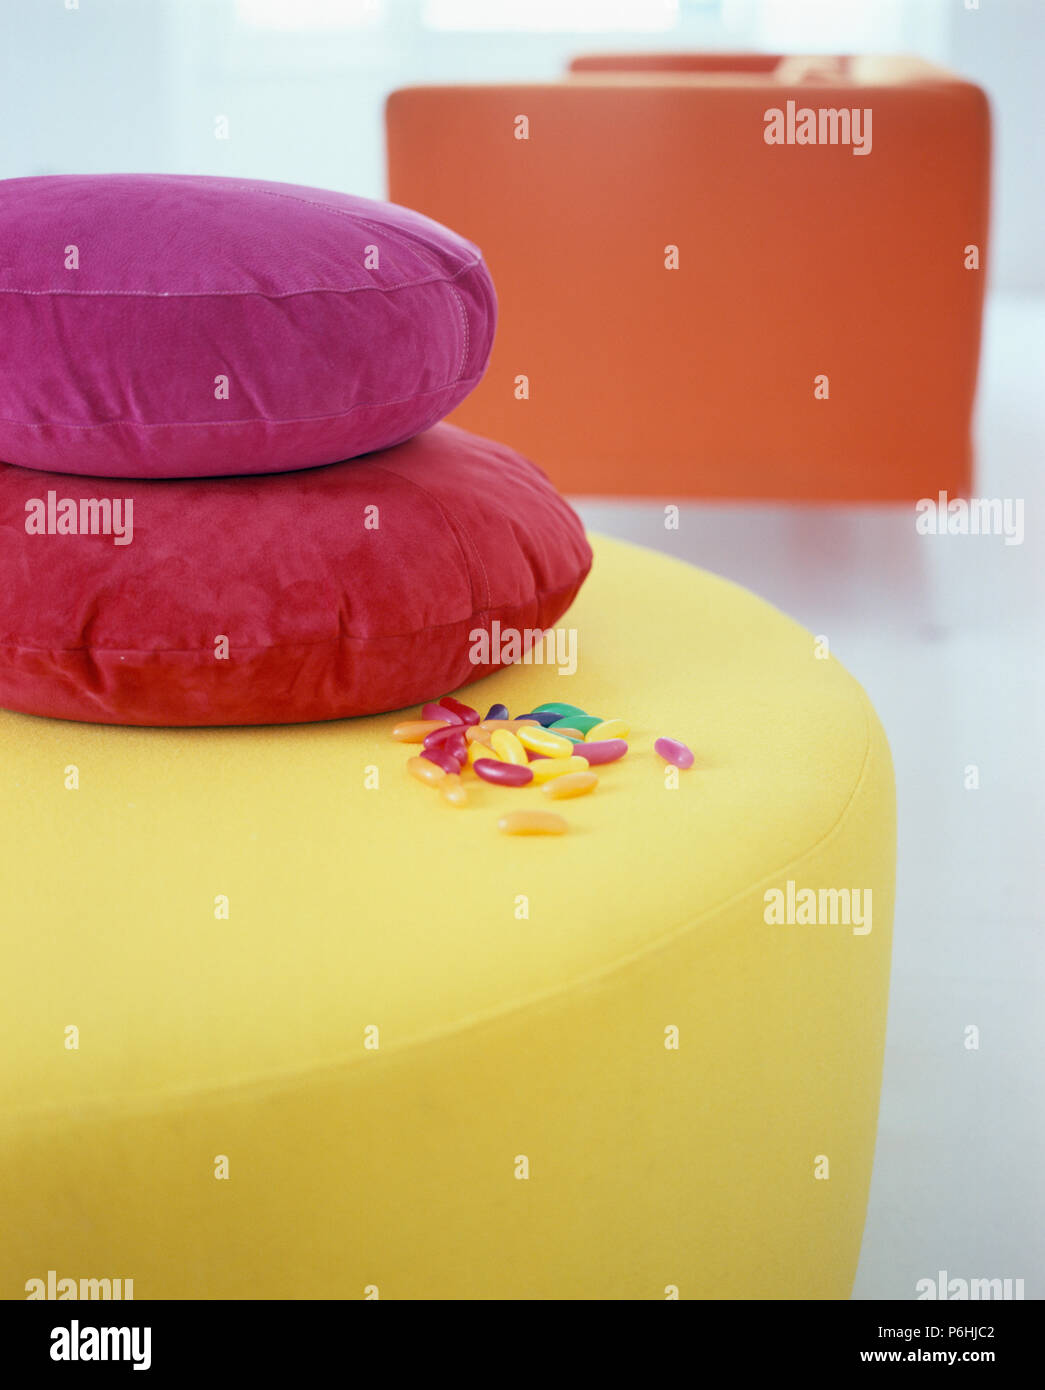 Close-up of red and pink cushions on modern circular yellow upholstered stool - Stock Image